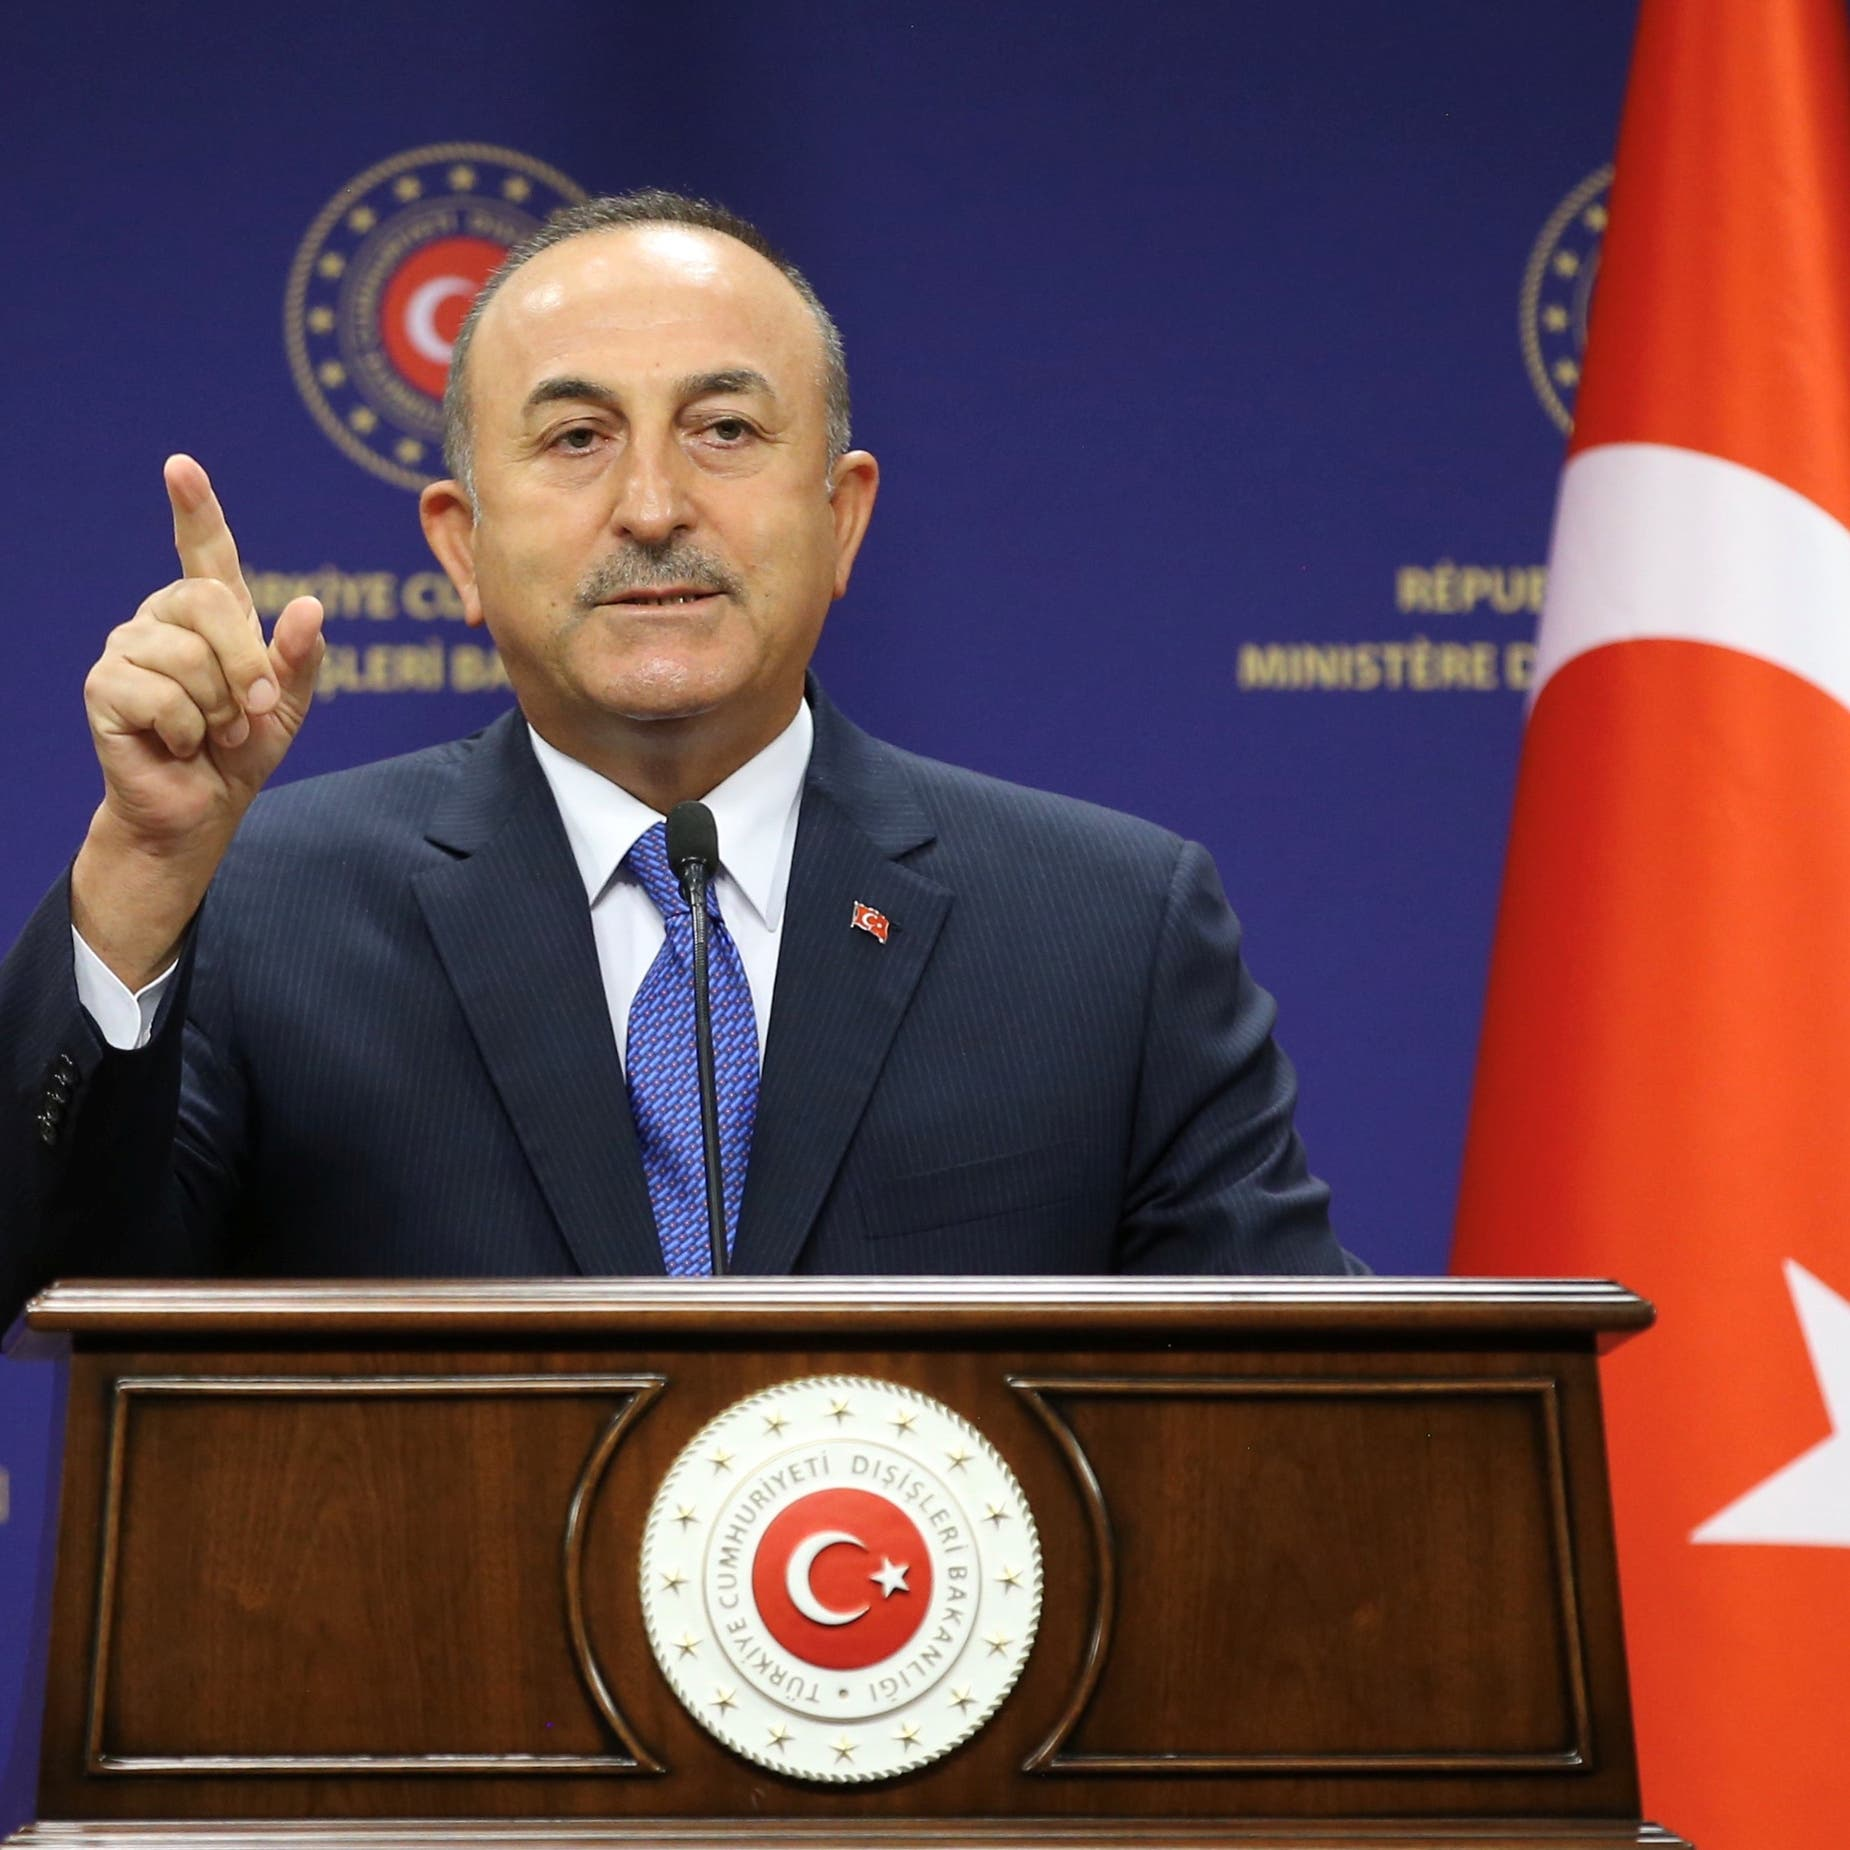 Turkey welcomes Taliban's 'positive message' to intl community: FM